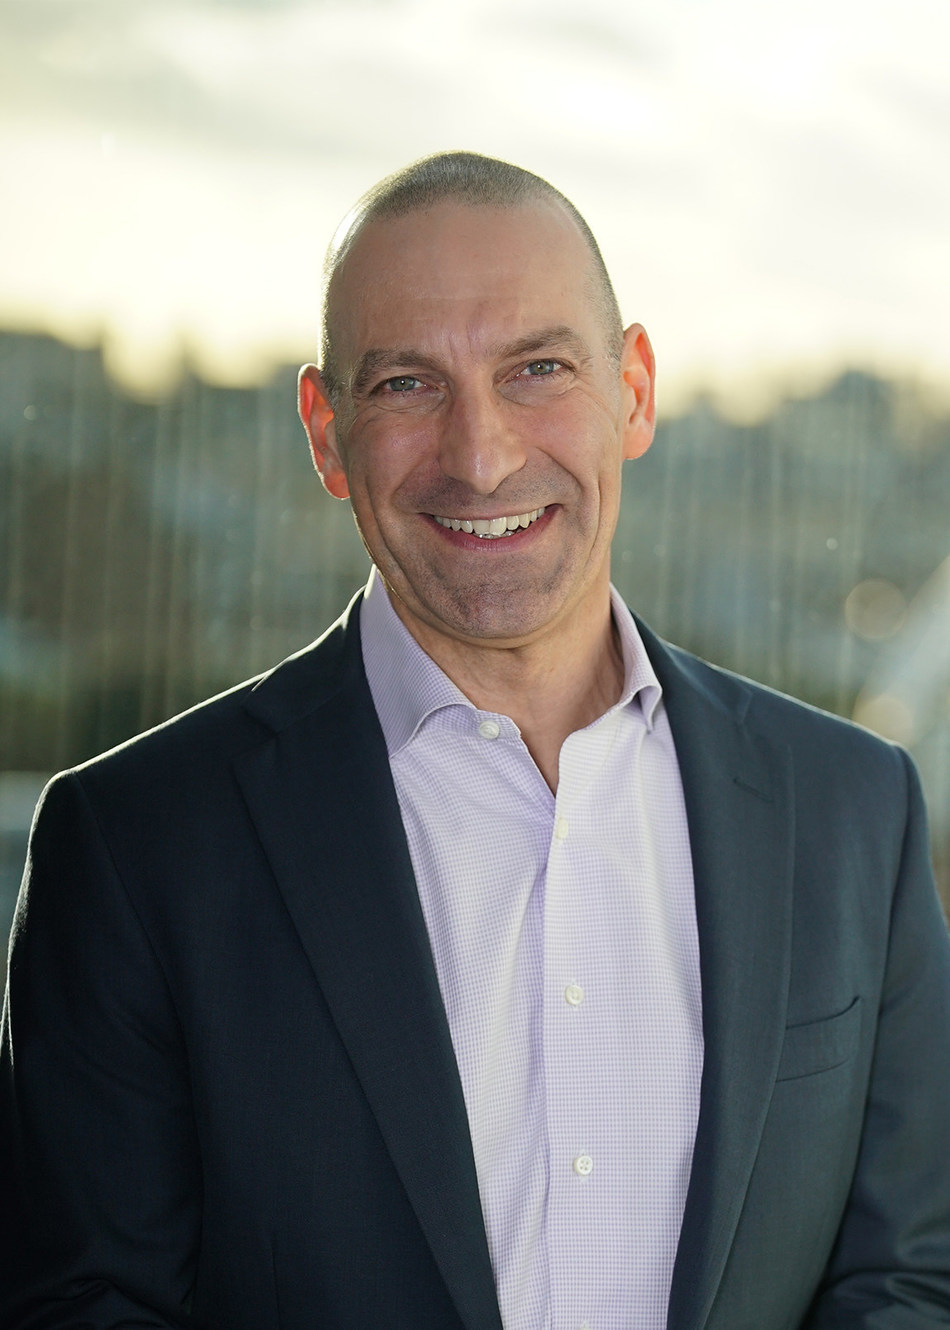 Panos Kakoullis, CEO-Elect, PA Consulting